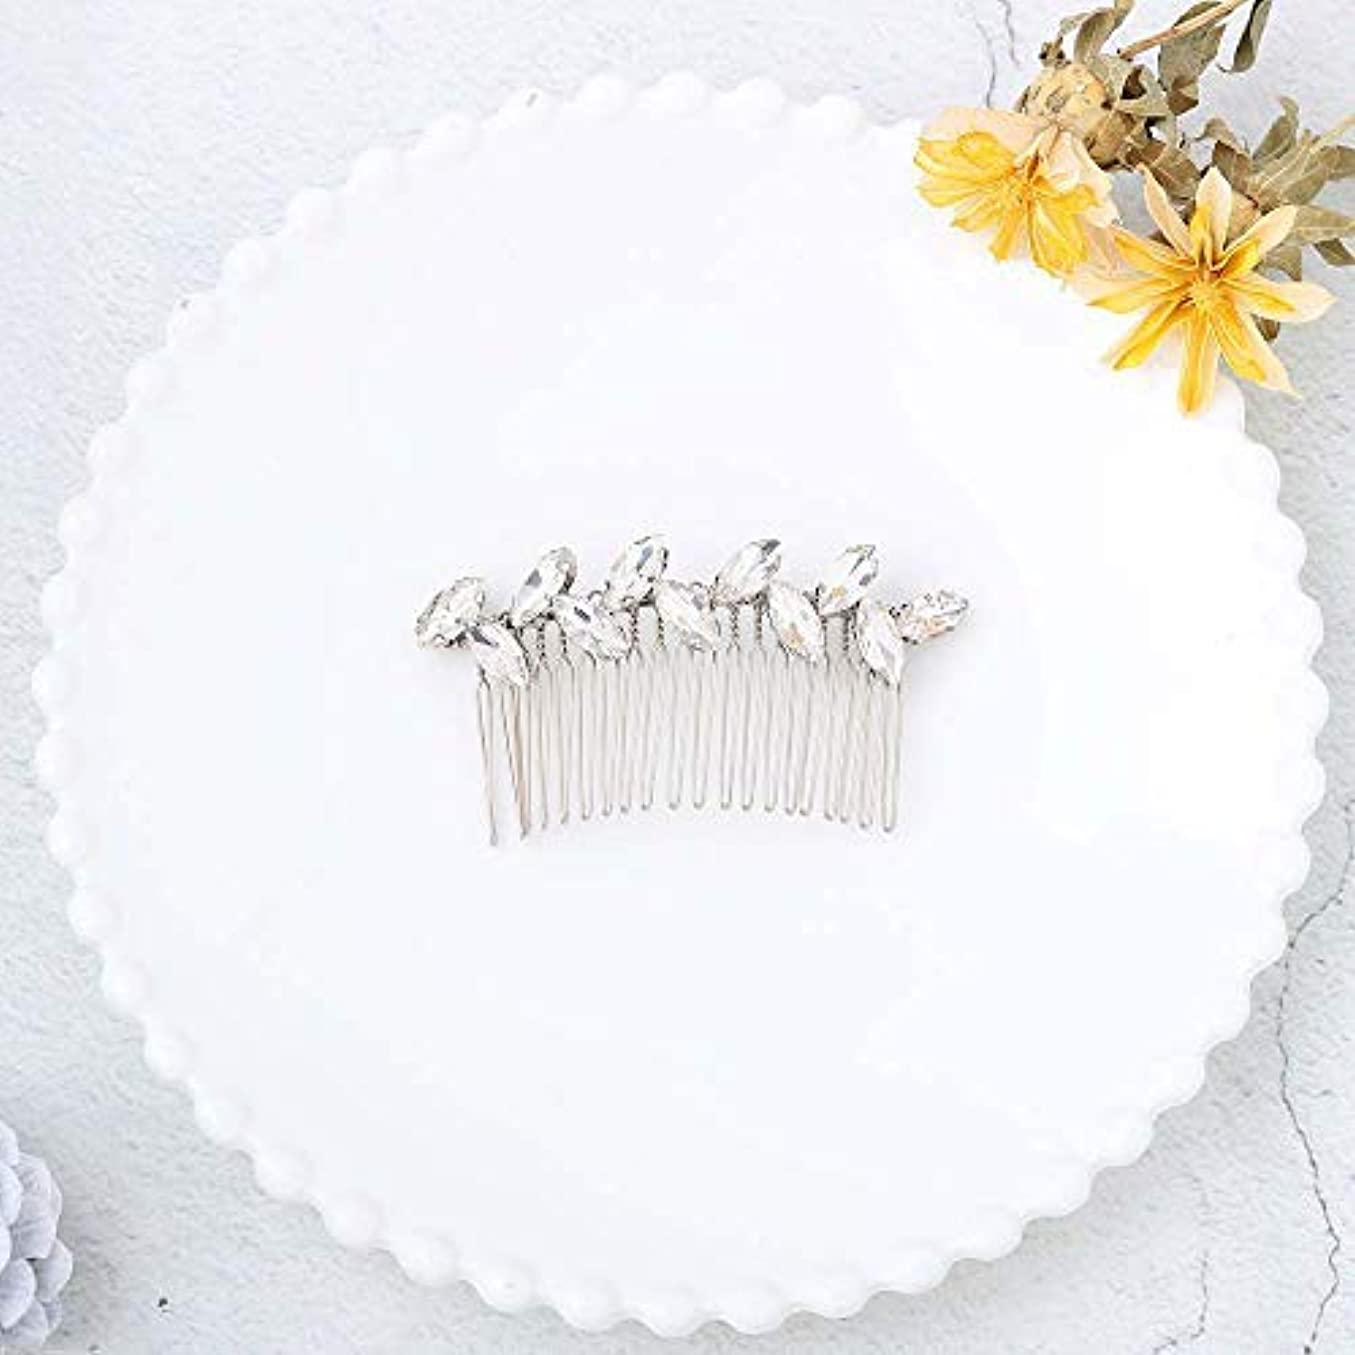 義務付けられたジャンク地域Jovono Bride Wedding Hair Comb Bridal Headpieces with White Rhinestone for Women and Girls (Silver) [並行輸入品]